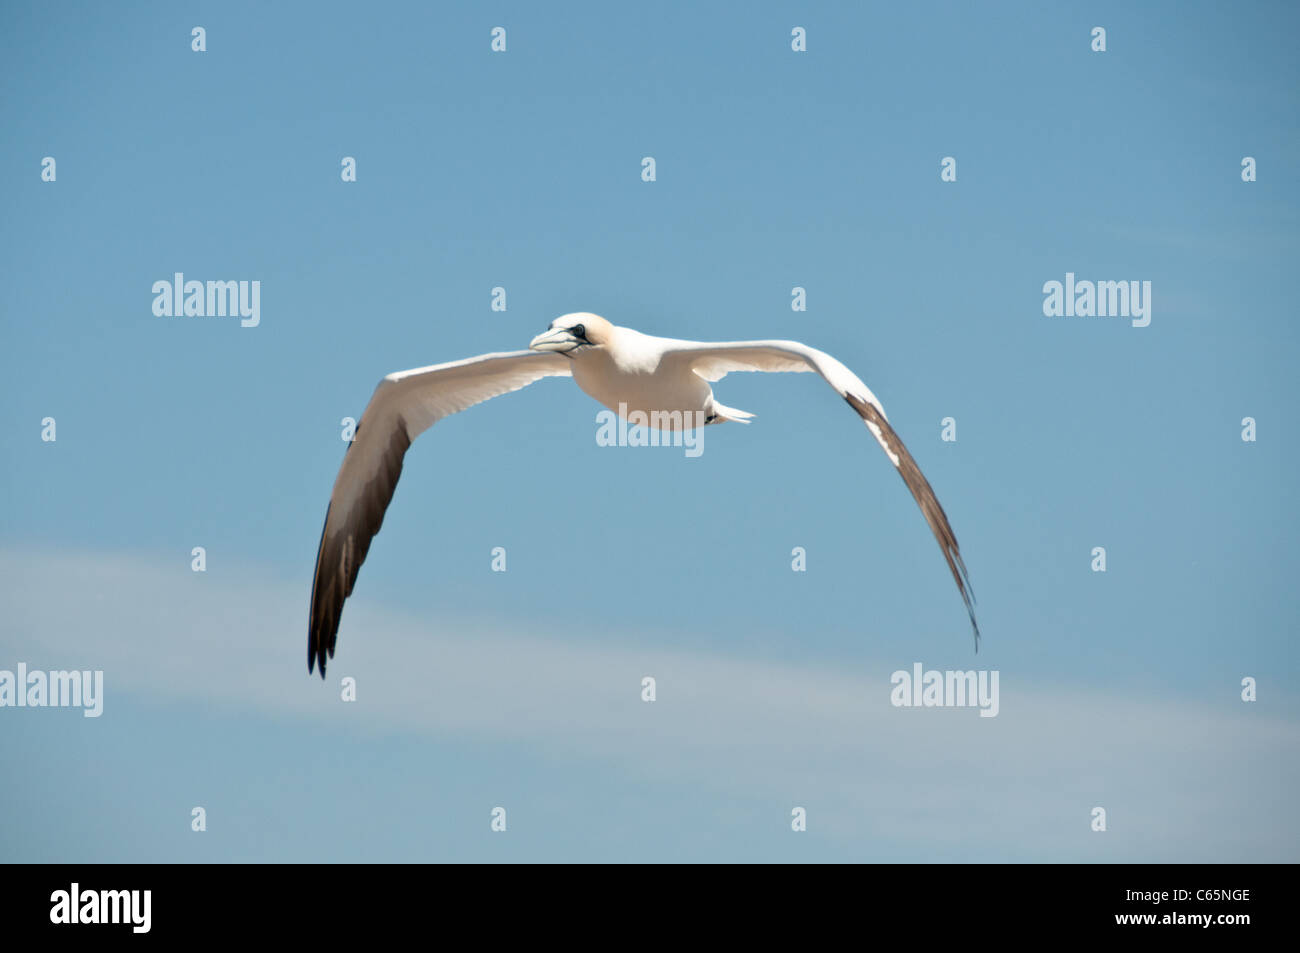 Flying northern gannet Stock Photo